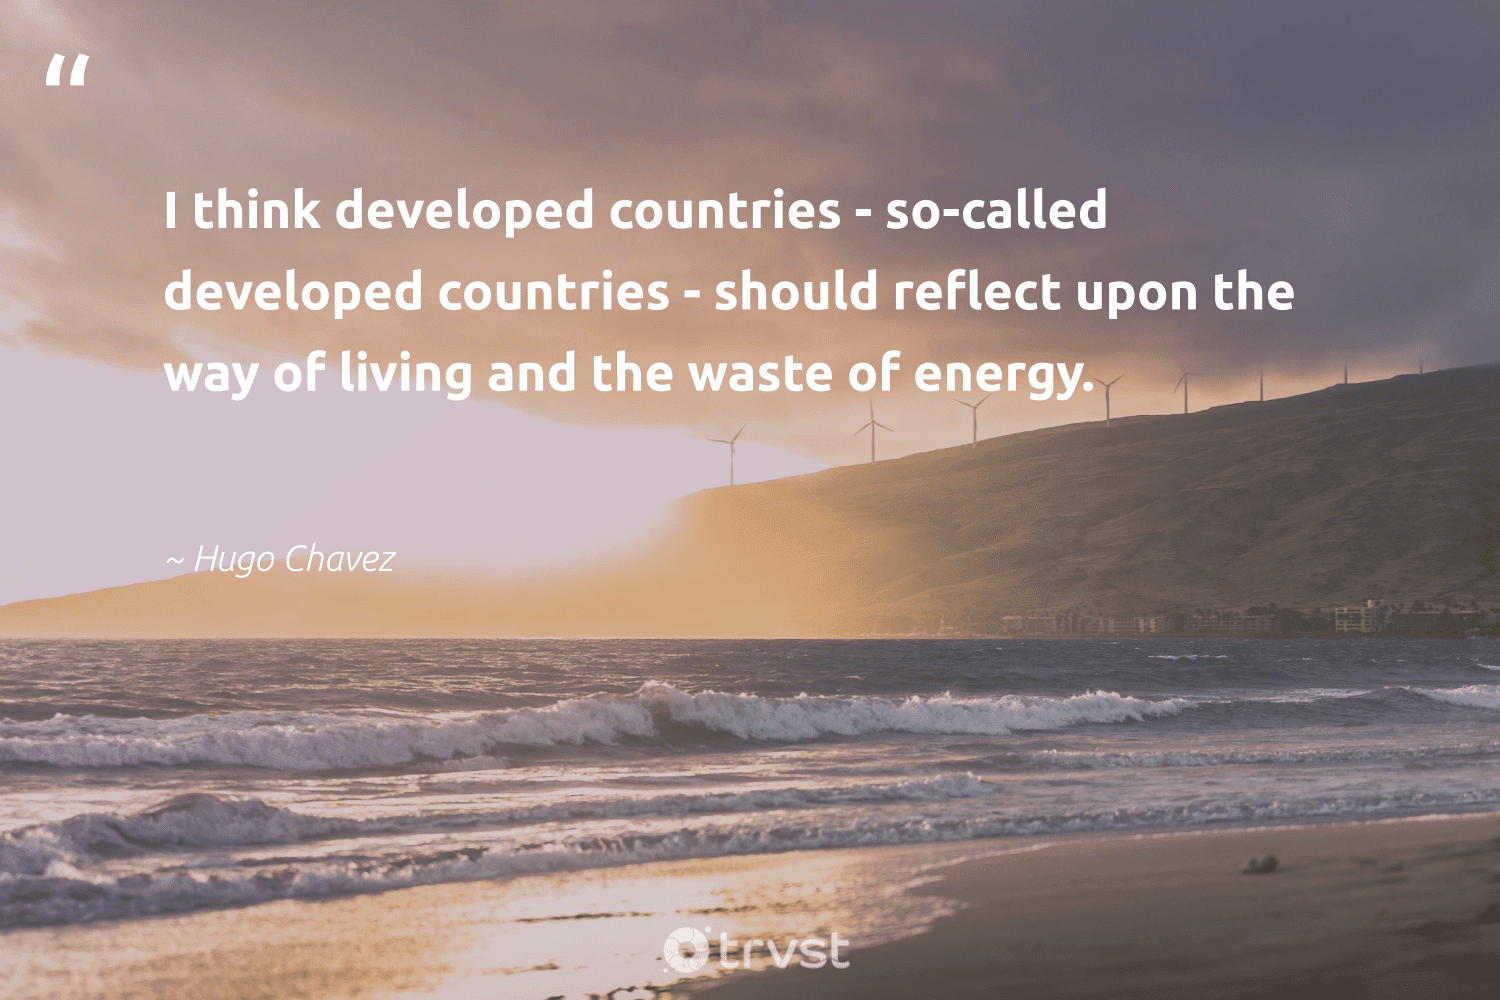 """""""I think developed countries - so-called developed countries - should reflect upon the way of living and the waste of energy.""""  - Hugo Chavez #trvst #quotes #waste #energy #green #socialimpact #ecofriendly #dogood #carboncapture #dosomething #globalwarming #bethechange"""